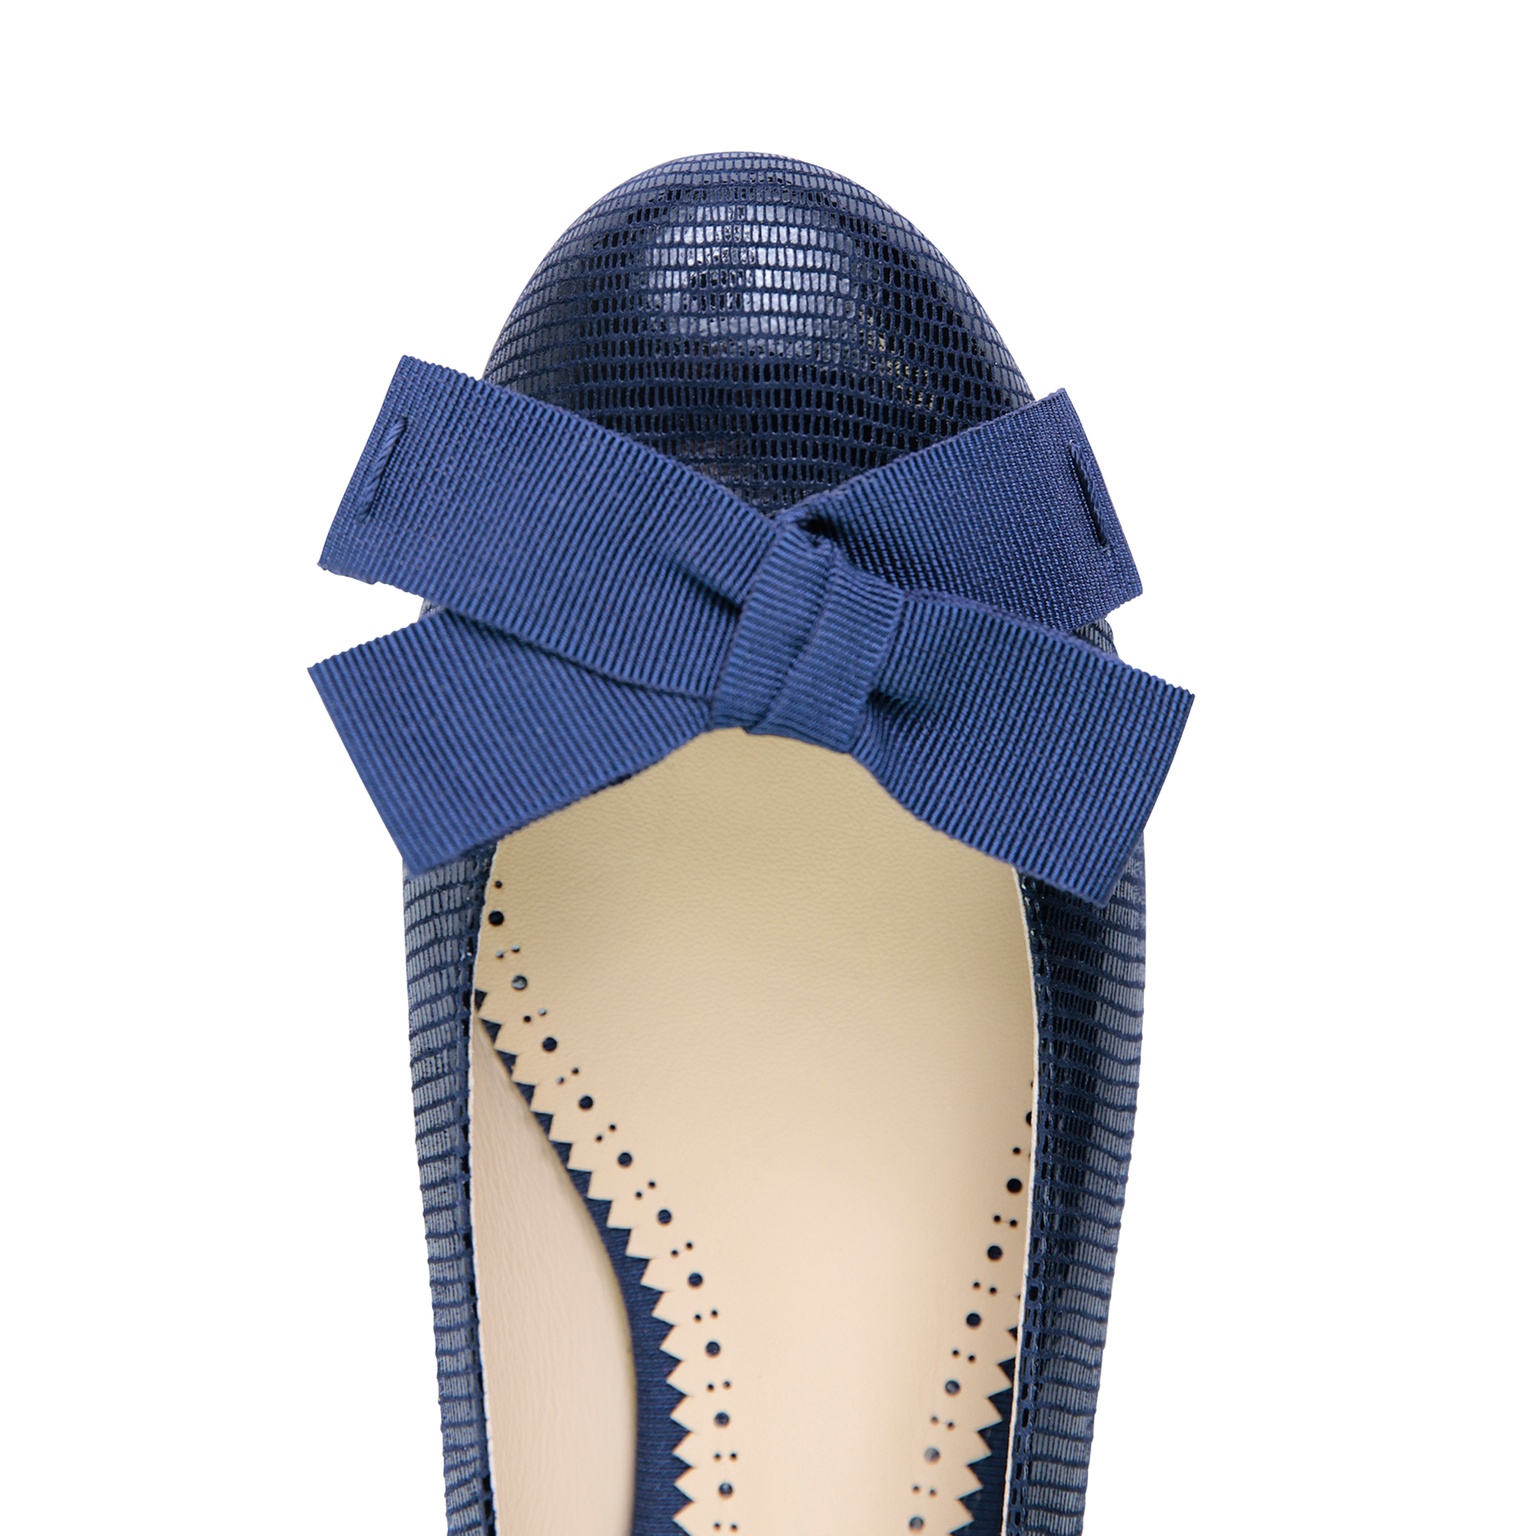 ROMA - Varanus Midnight + Grosgrain Bow, VIAJIYU - Women's Hand Made Sustainable Luxury Shoes. Made in Italy. Made to Order.